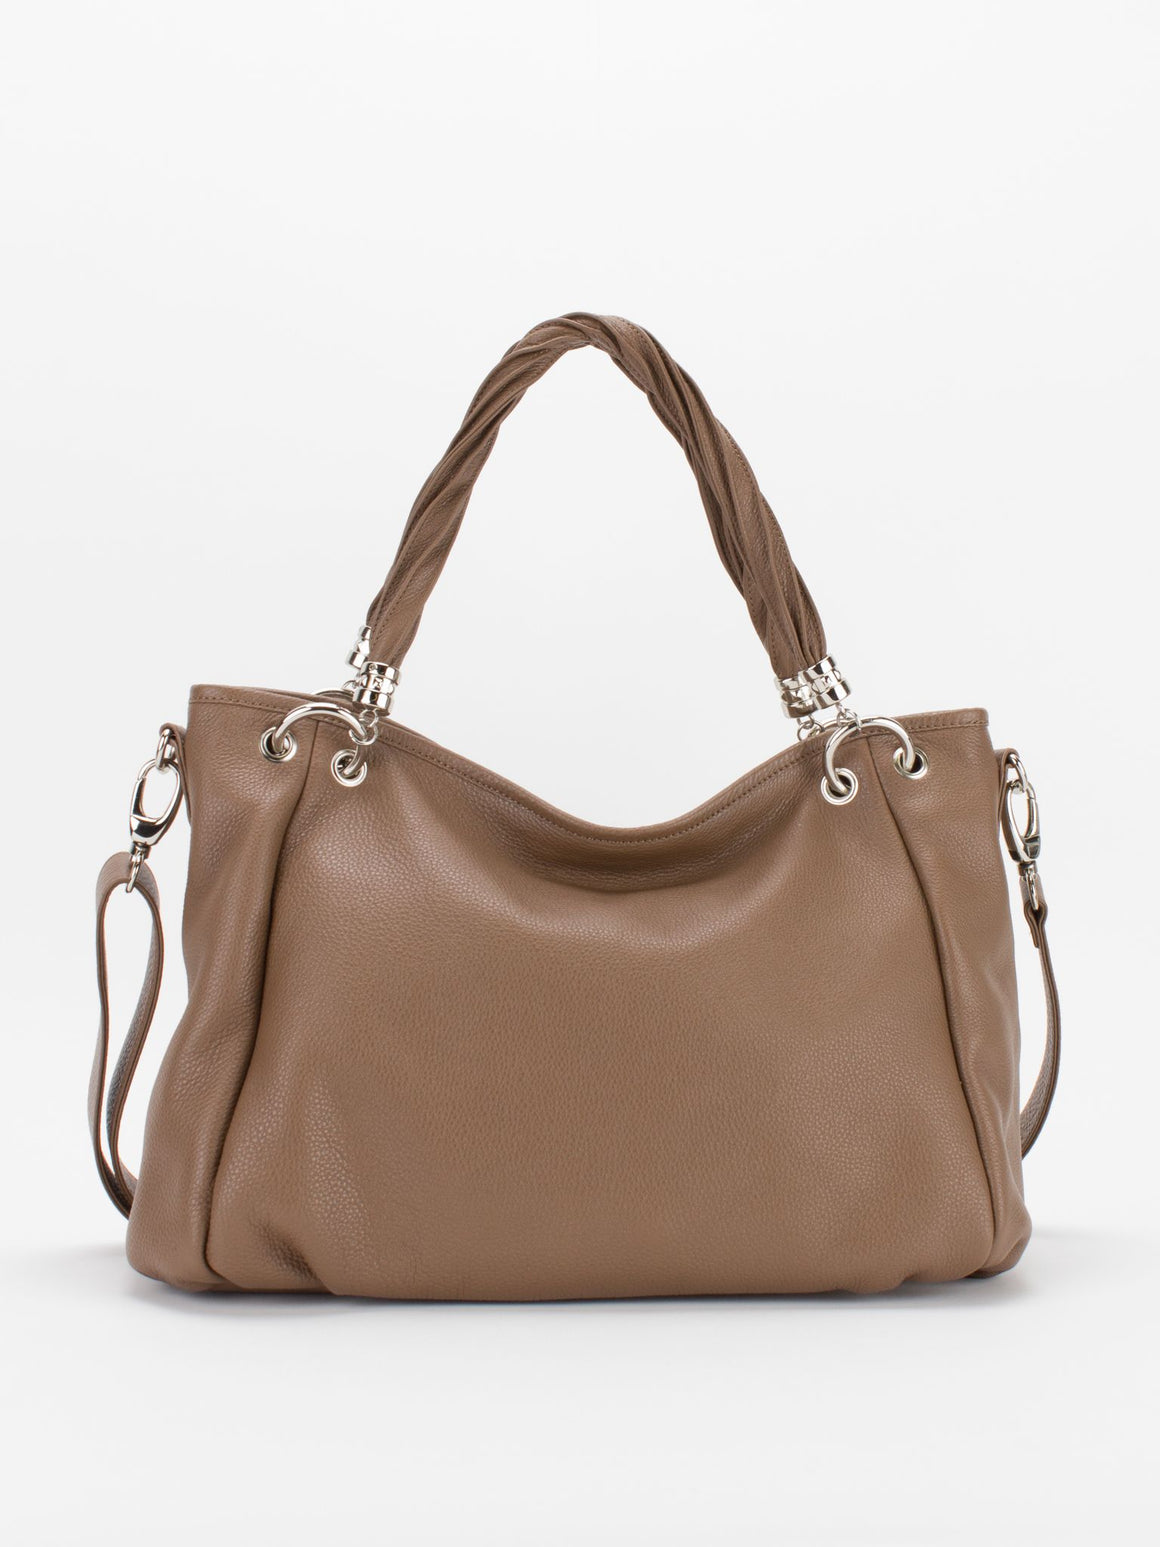 Emmy Leather Tote - Latte